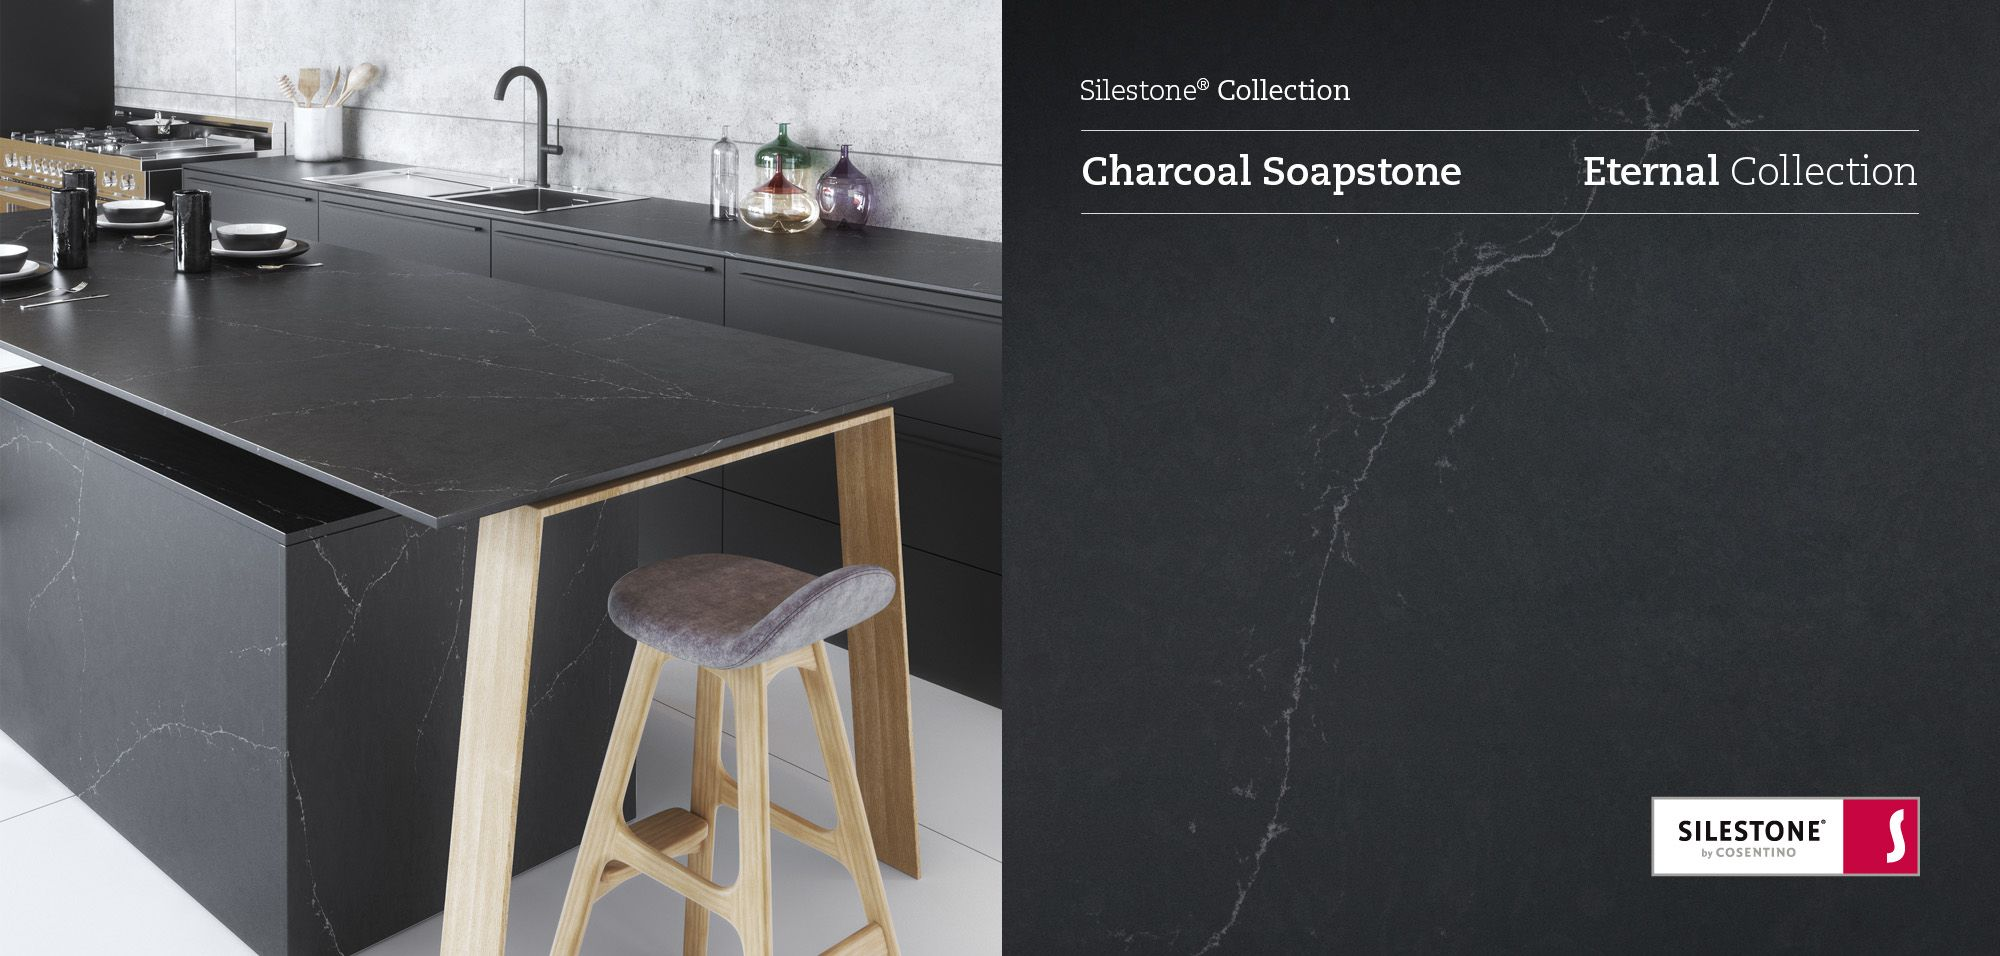 The new Silestone Charcoal Soapstone, part of the Eternal Series ...